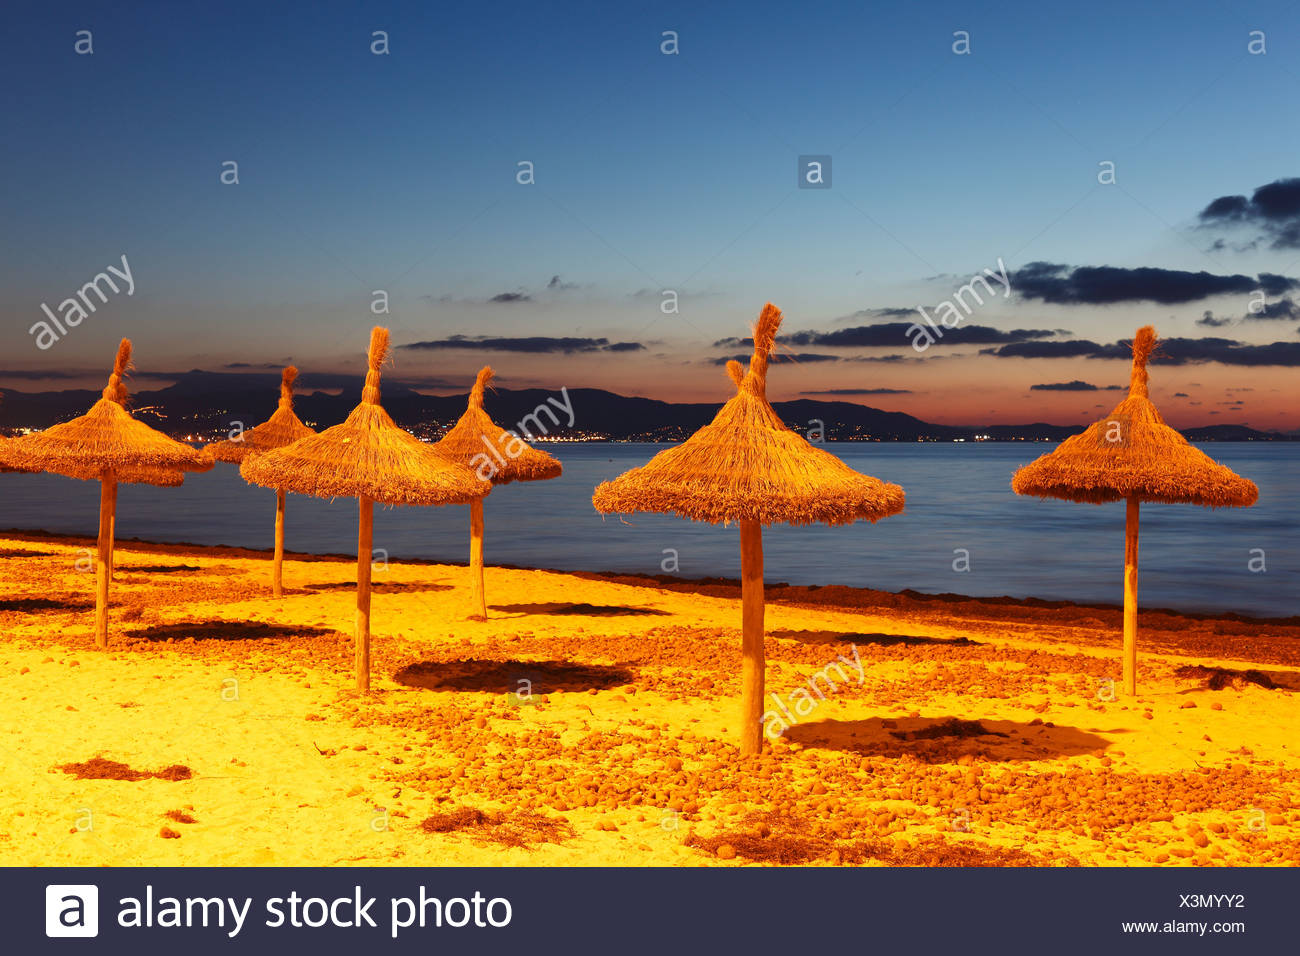 Straw umbrellas on the beach, S'Arenal, El Arenal, evening mood, Majorca, Balearic Islands, Spain, Europe - Stock Image